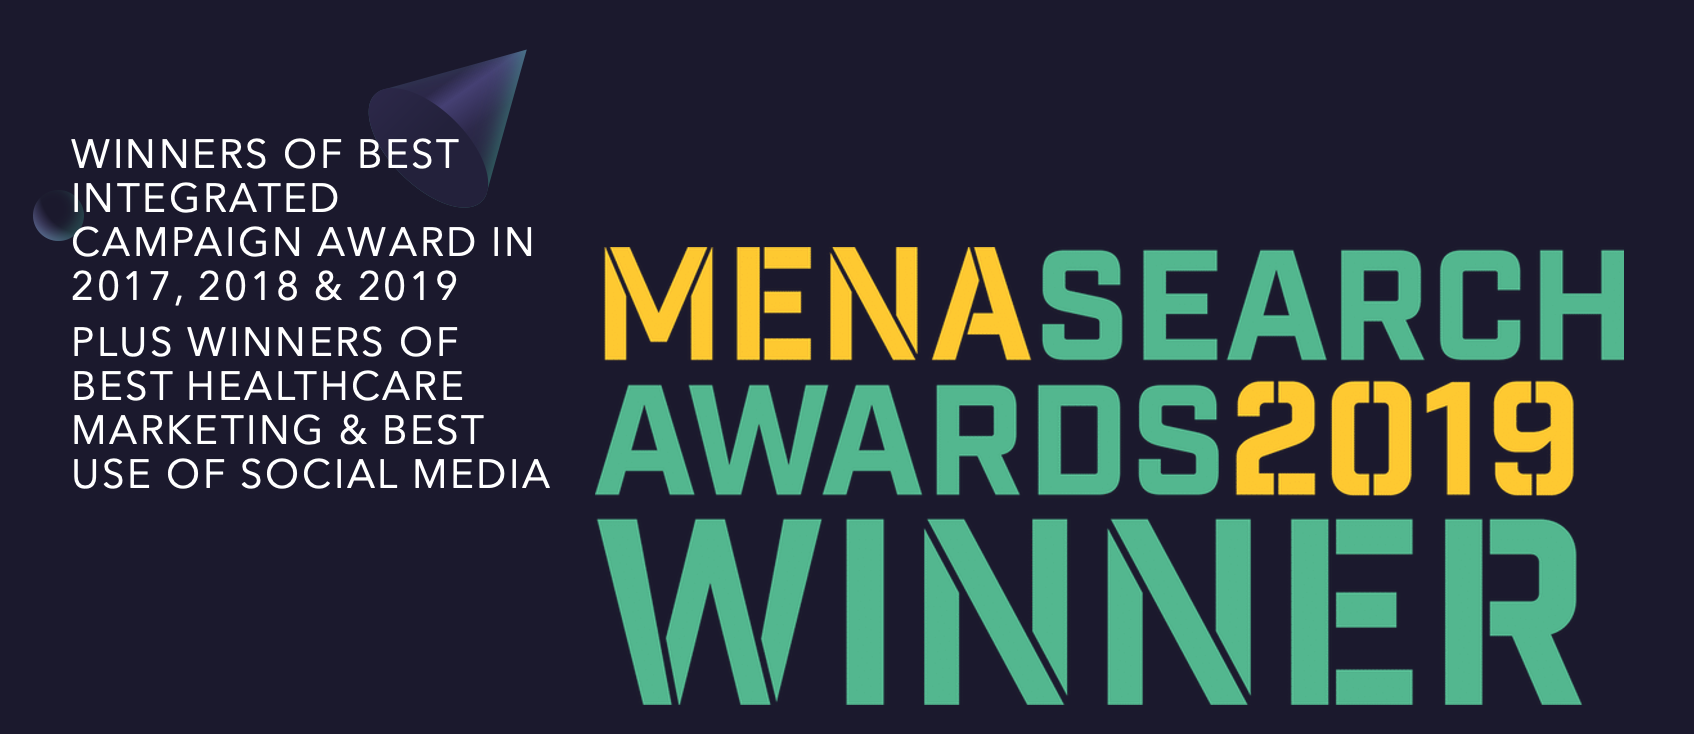 MENA Search Awards